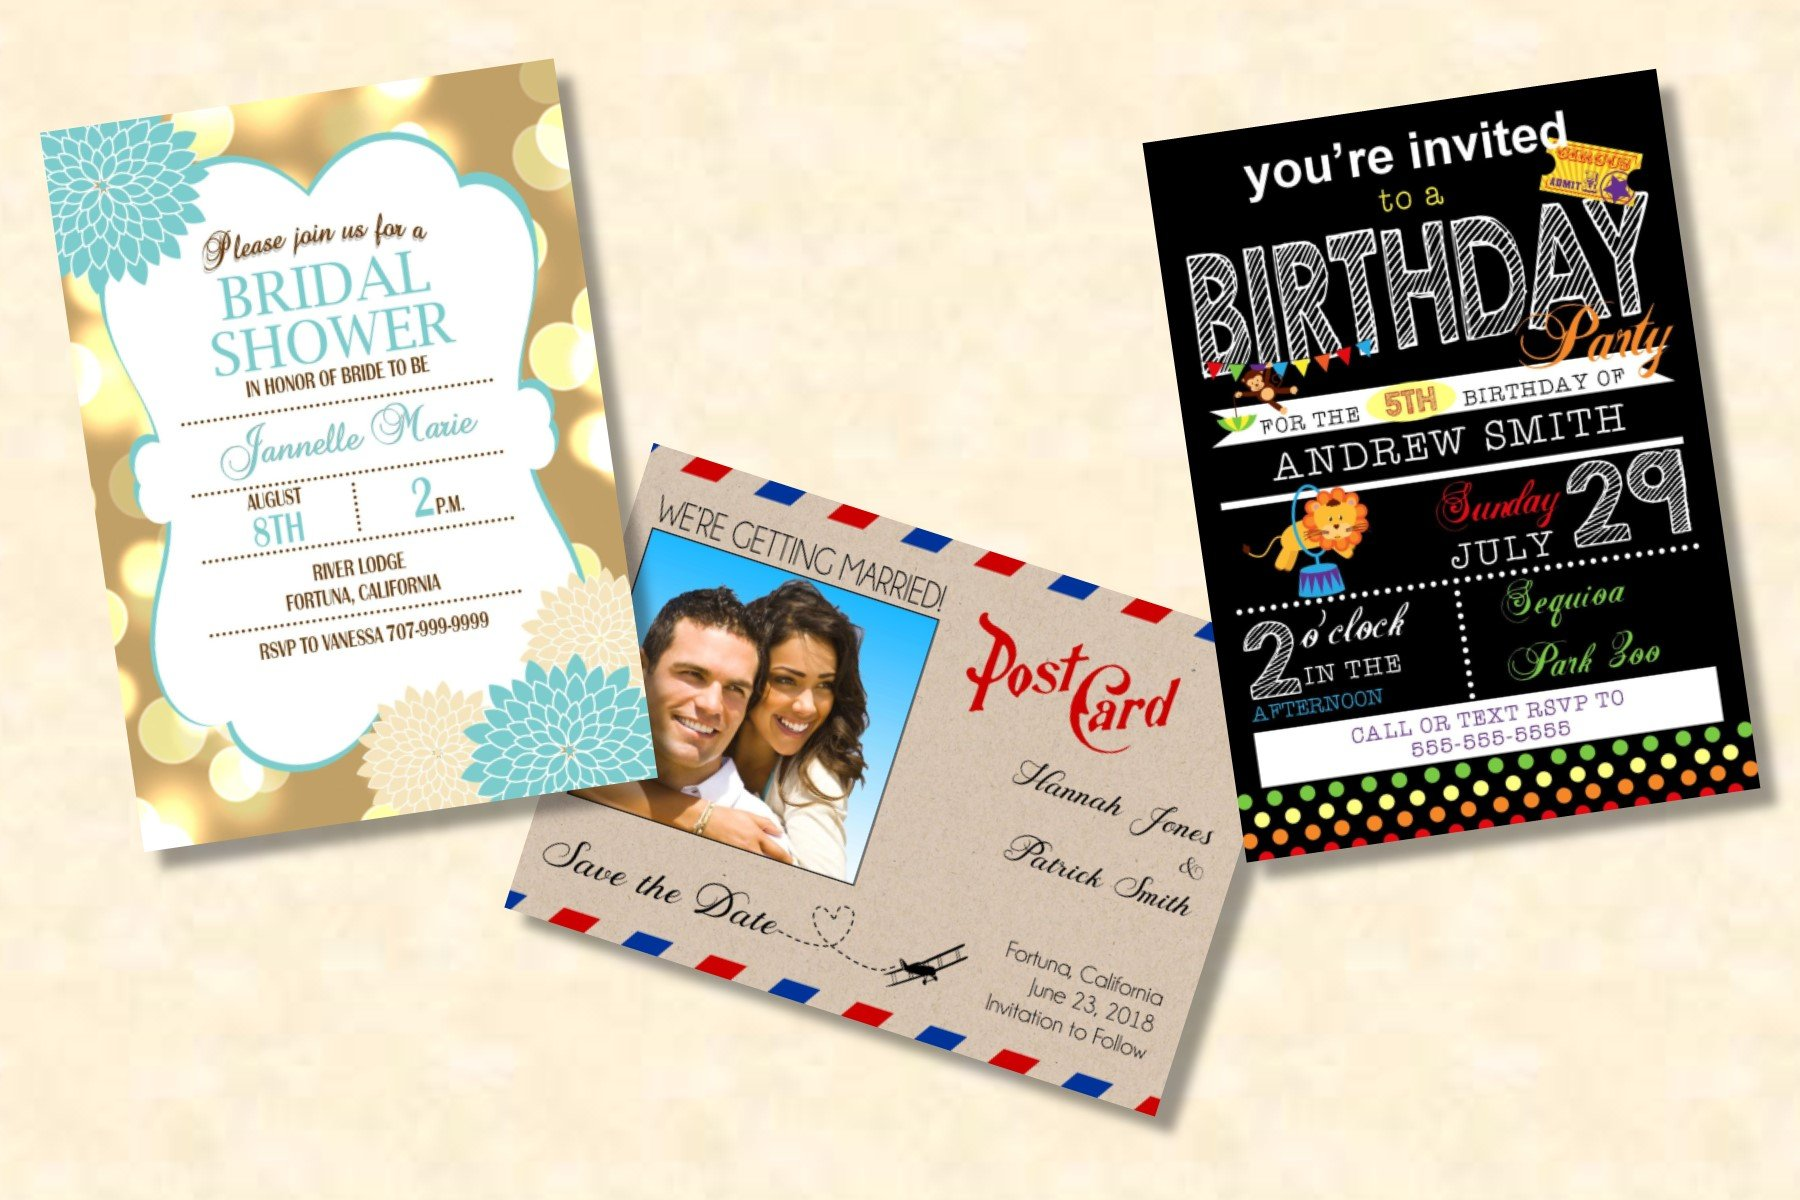 Postcard & Invitation Full or No Bleed Pricing 5x7